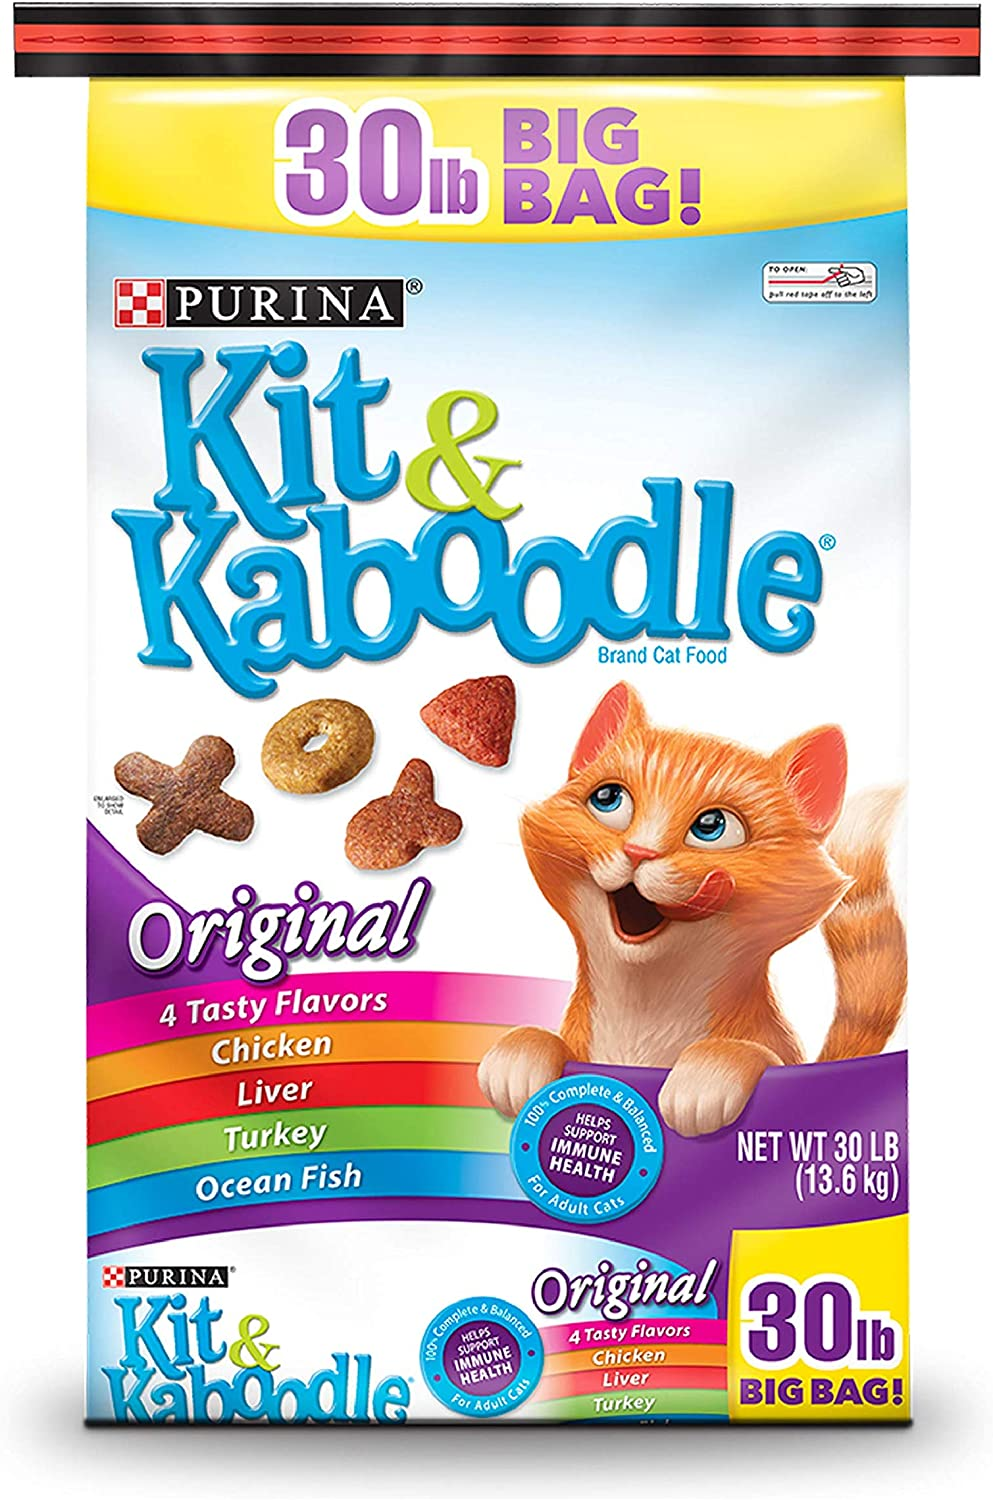 Pack of 2 - Purina Kit & Kaboodle Original Cat Food 30 lb.